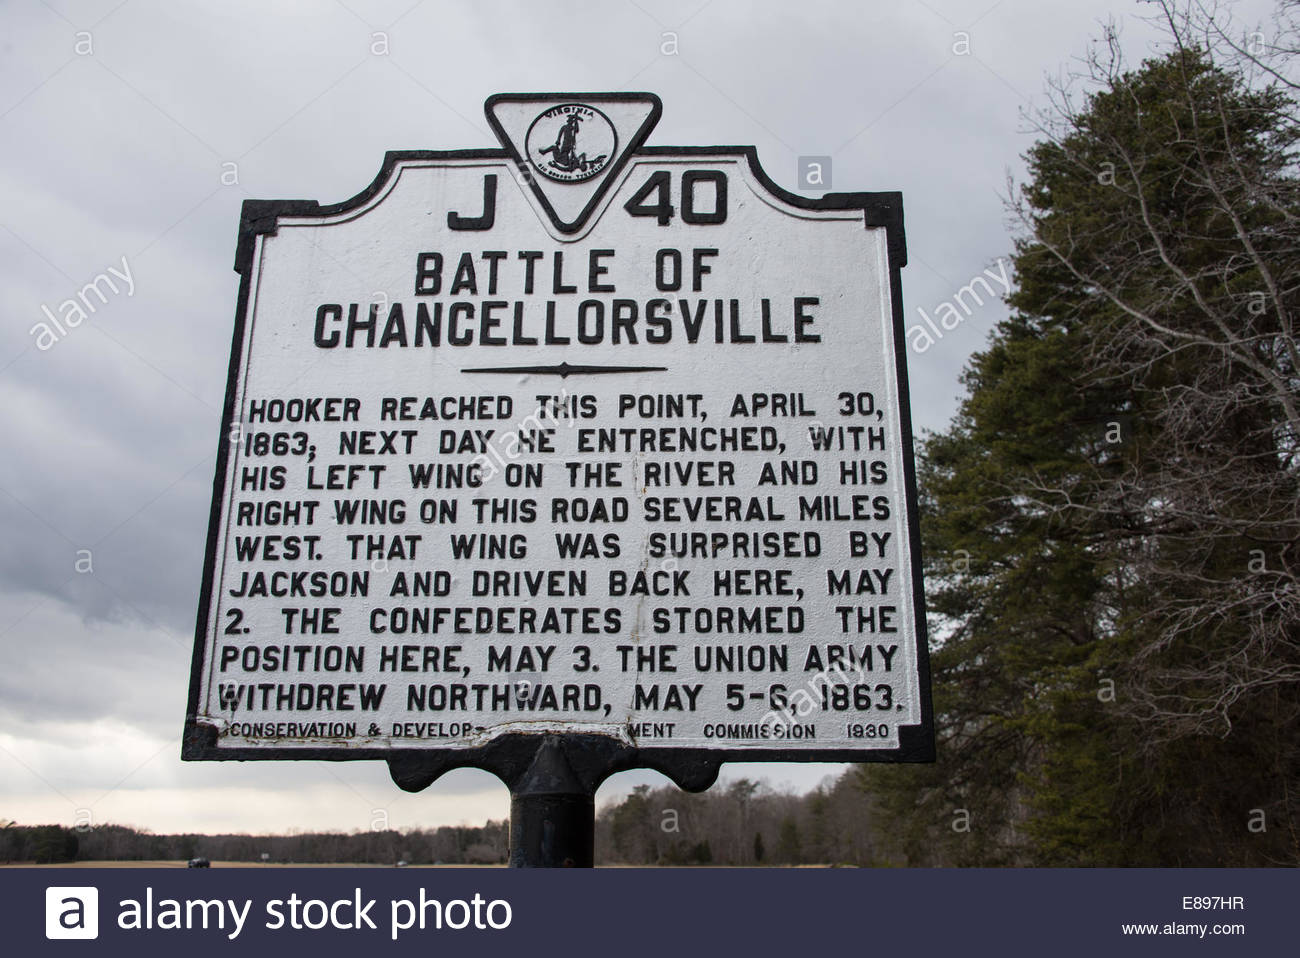 essay on the battle of chancellorsville A) define the subject: the battle of chancellorsville 1) the union fought under the leadership of general joseph hooker, against the confederacy led by general robert e lee.